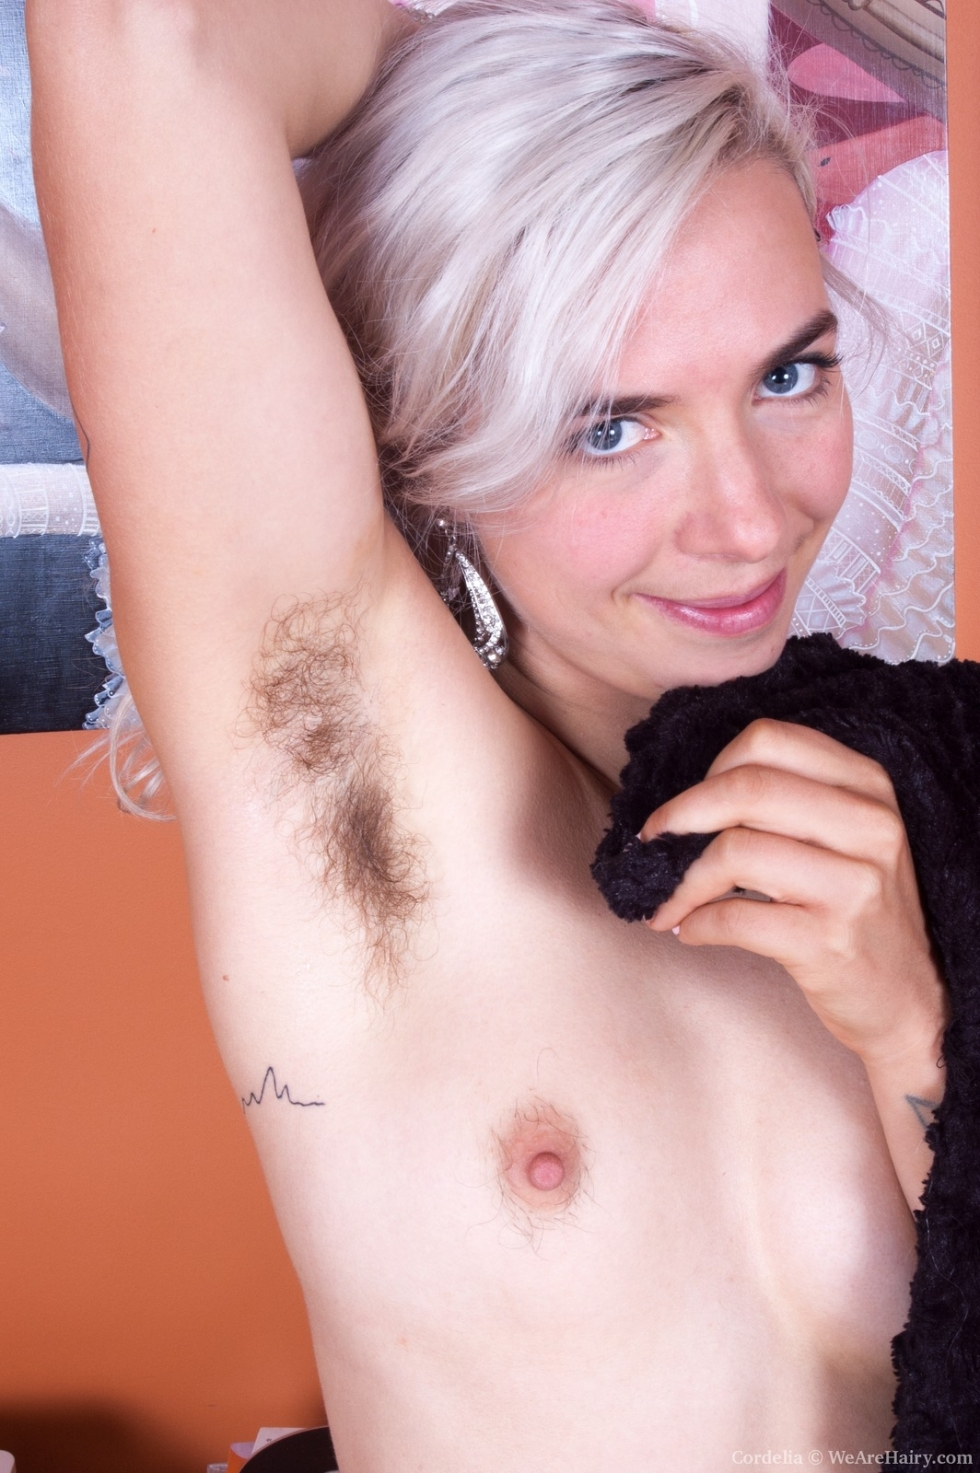 Hairy pussy and underarms